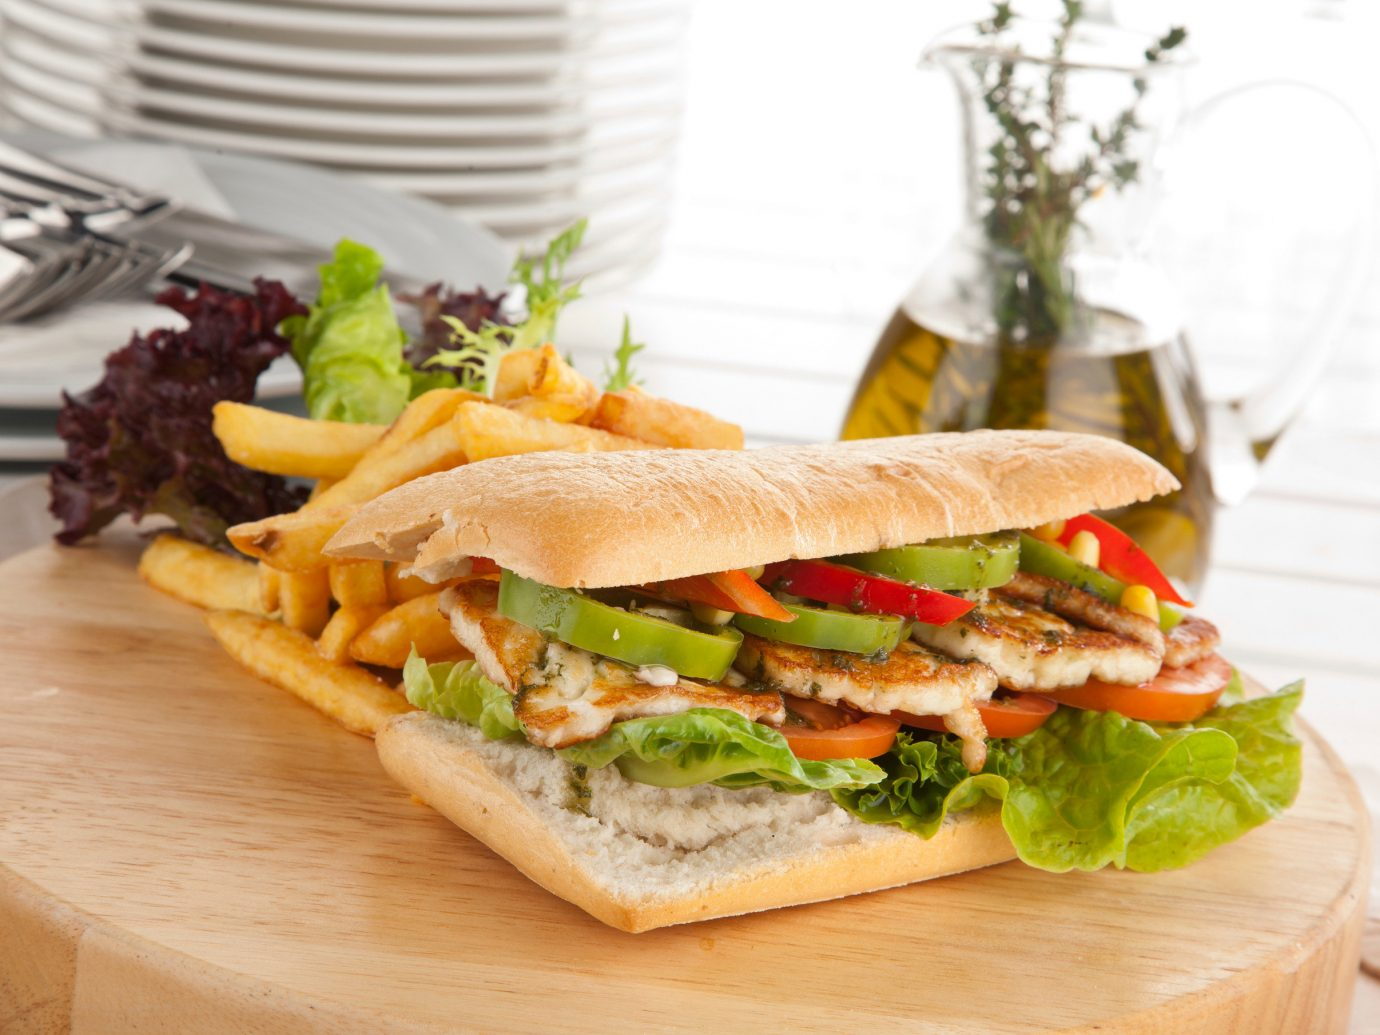 Trip Ideas table food sandwich snack food indoor dish bánh mì wooden meat blt submarine sandwich meal cuisine cut lunch close lettuce square